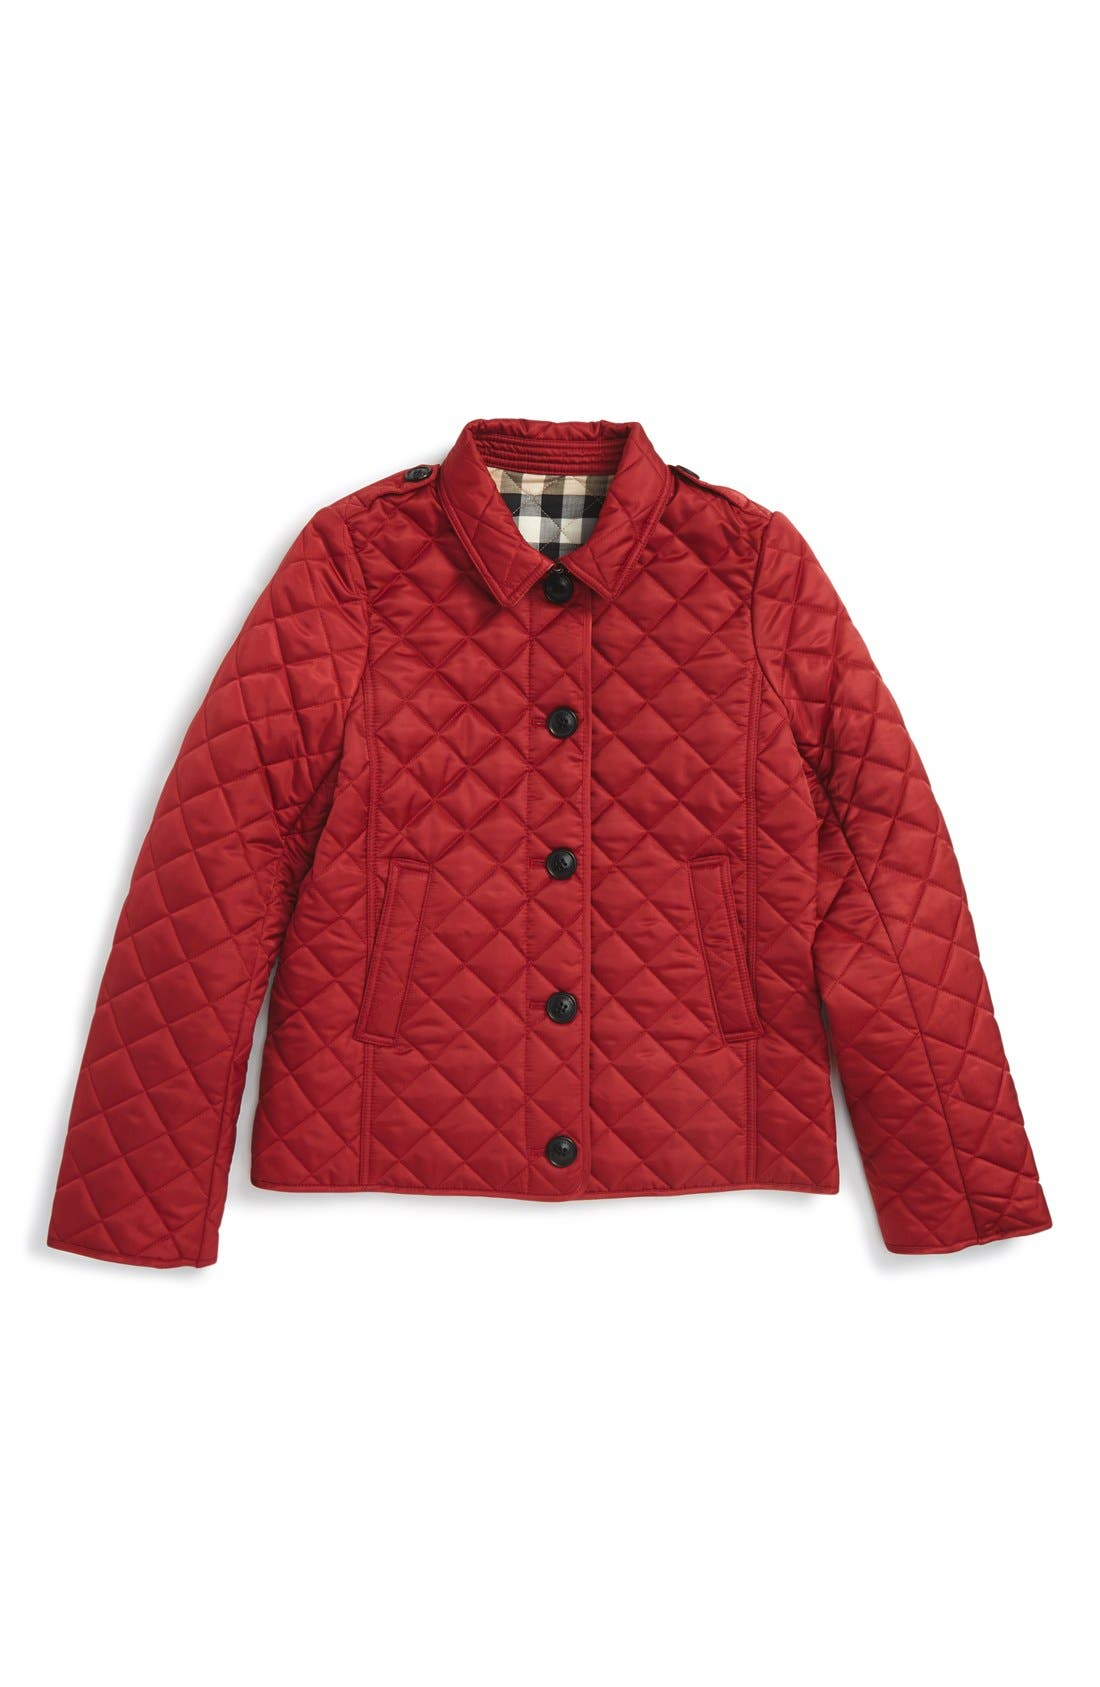 Little Girls' Jackets, Outerwear & Coats | Nordstrom | Nordstrom